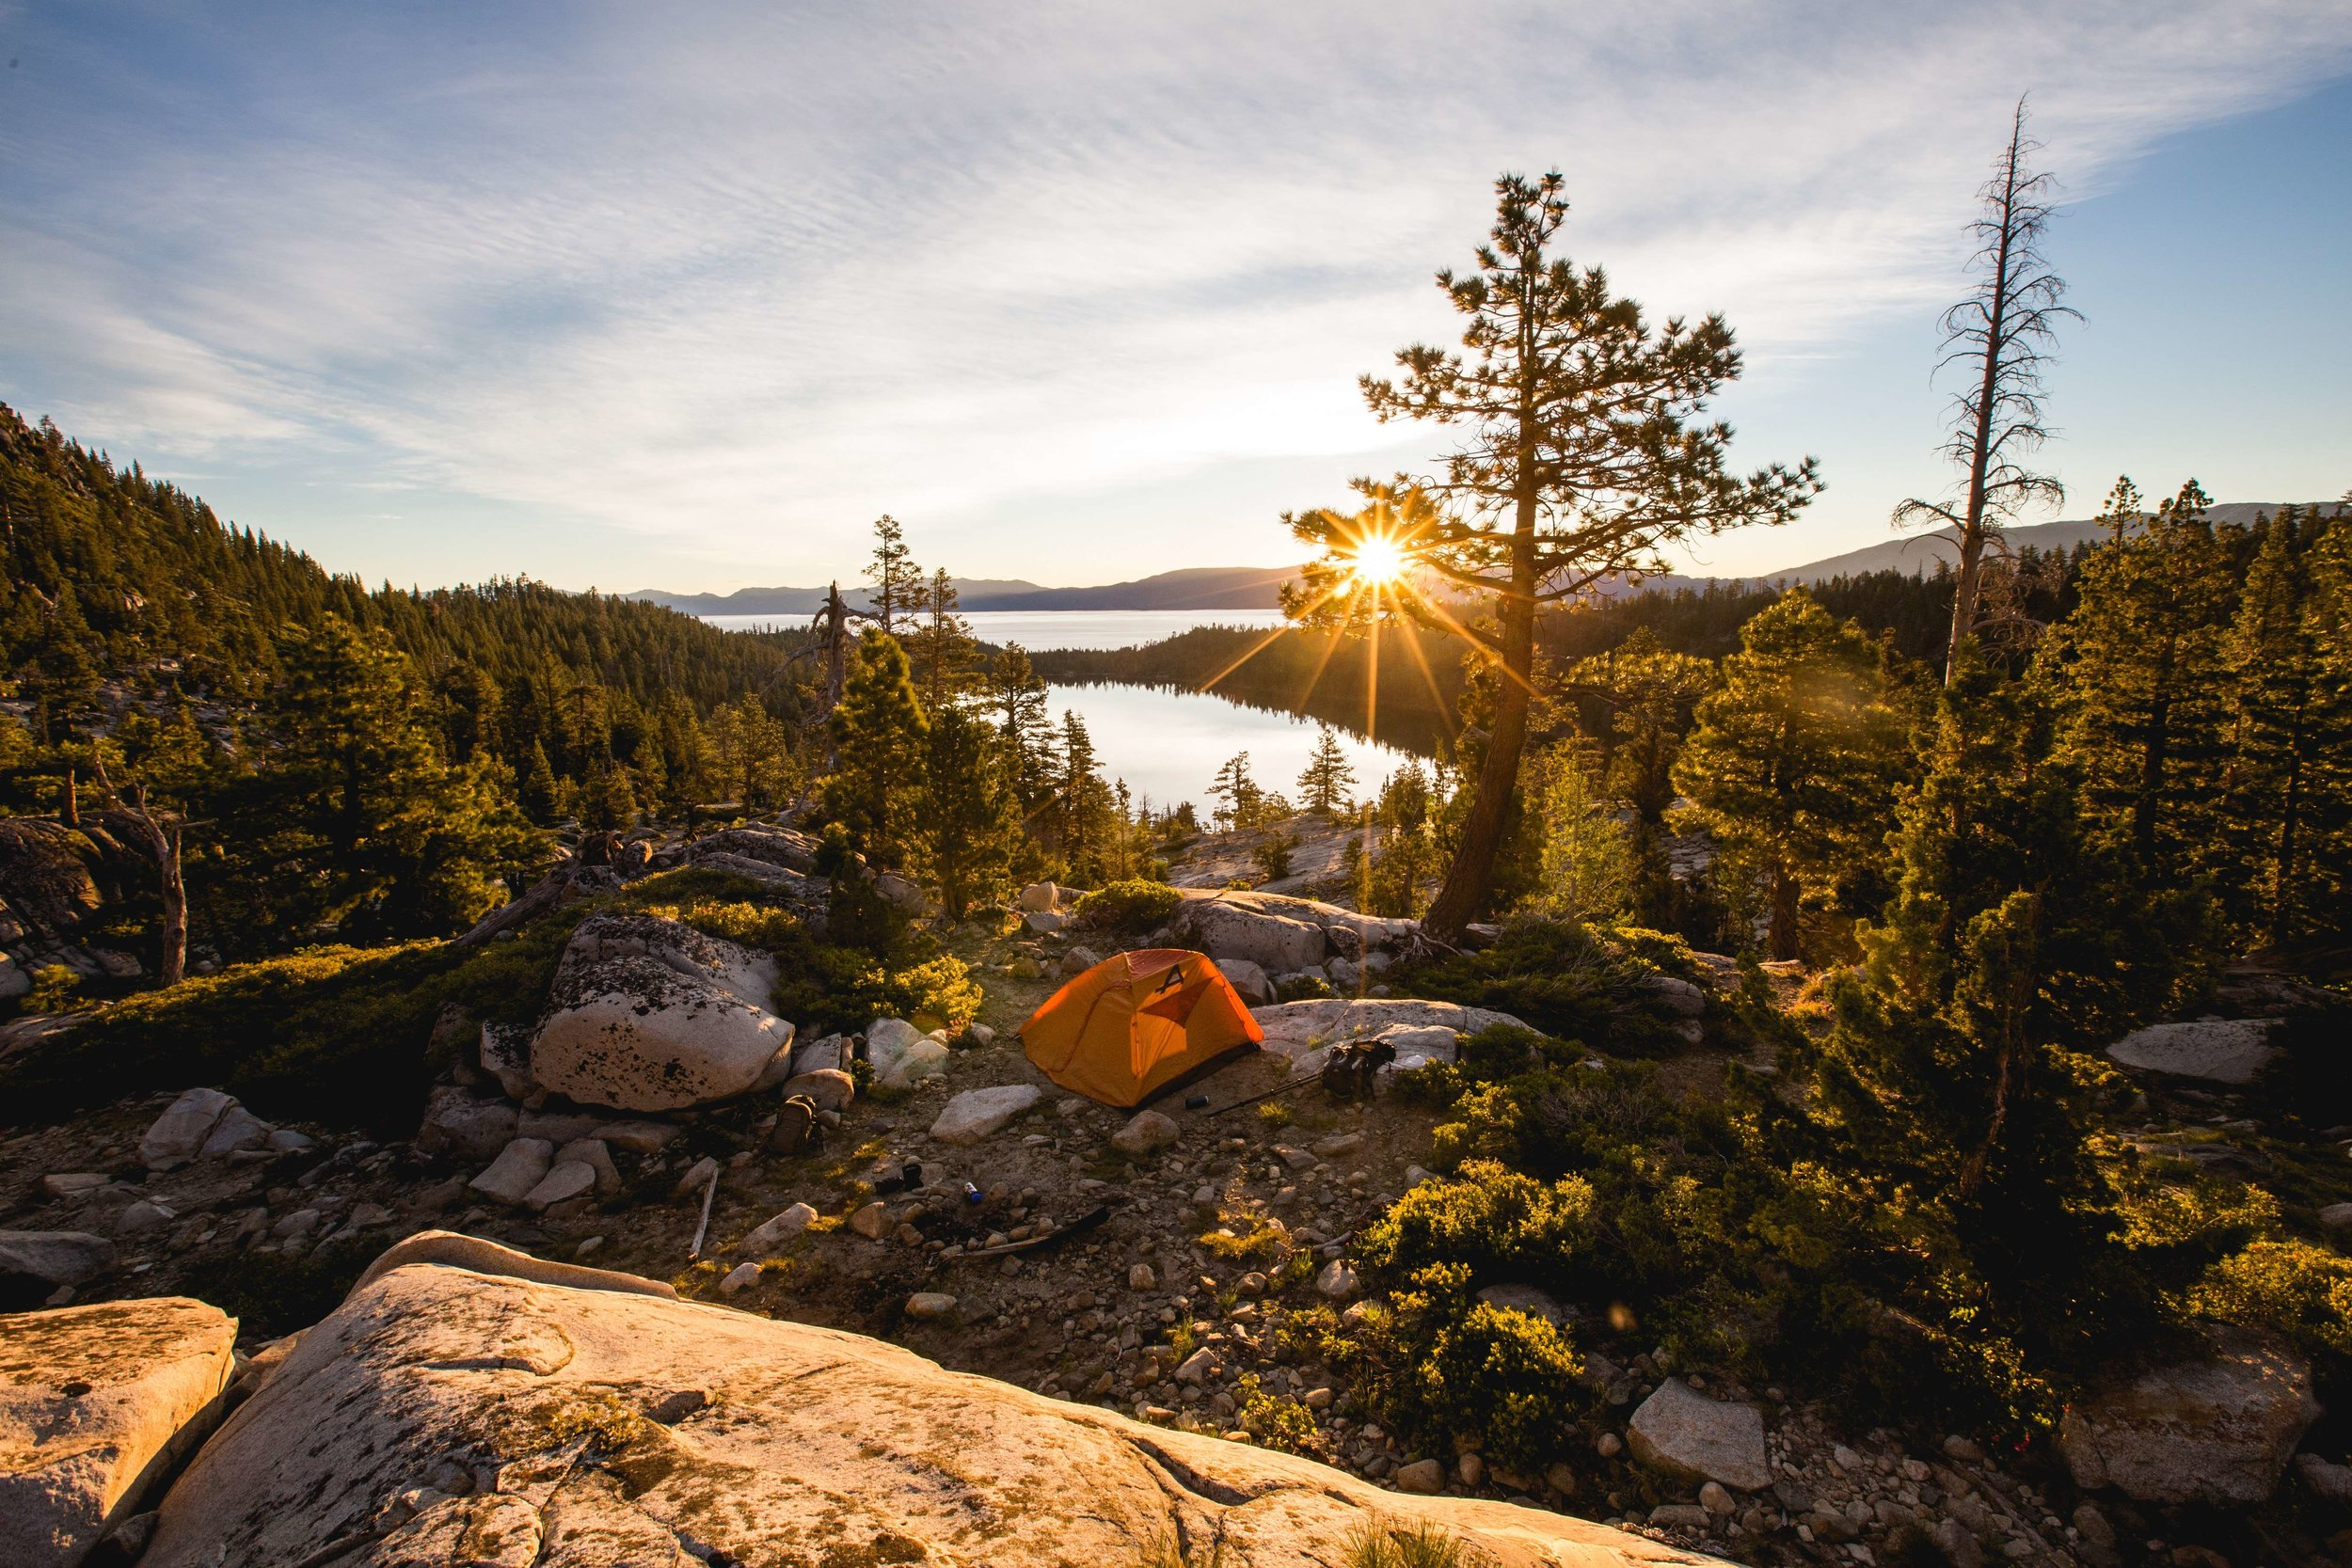 The best camping tents give you the freedom to easily visit beautiful places.   Photo by    Teddy Kelley    on    Unsplash